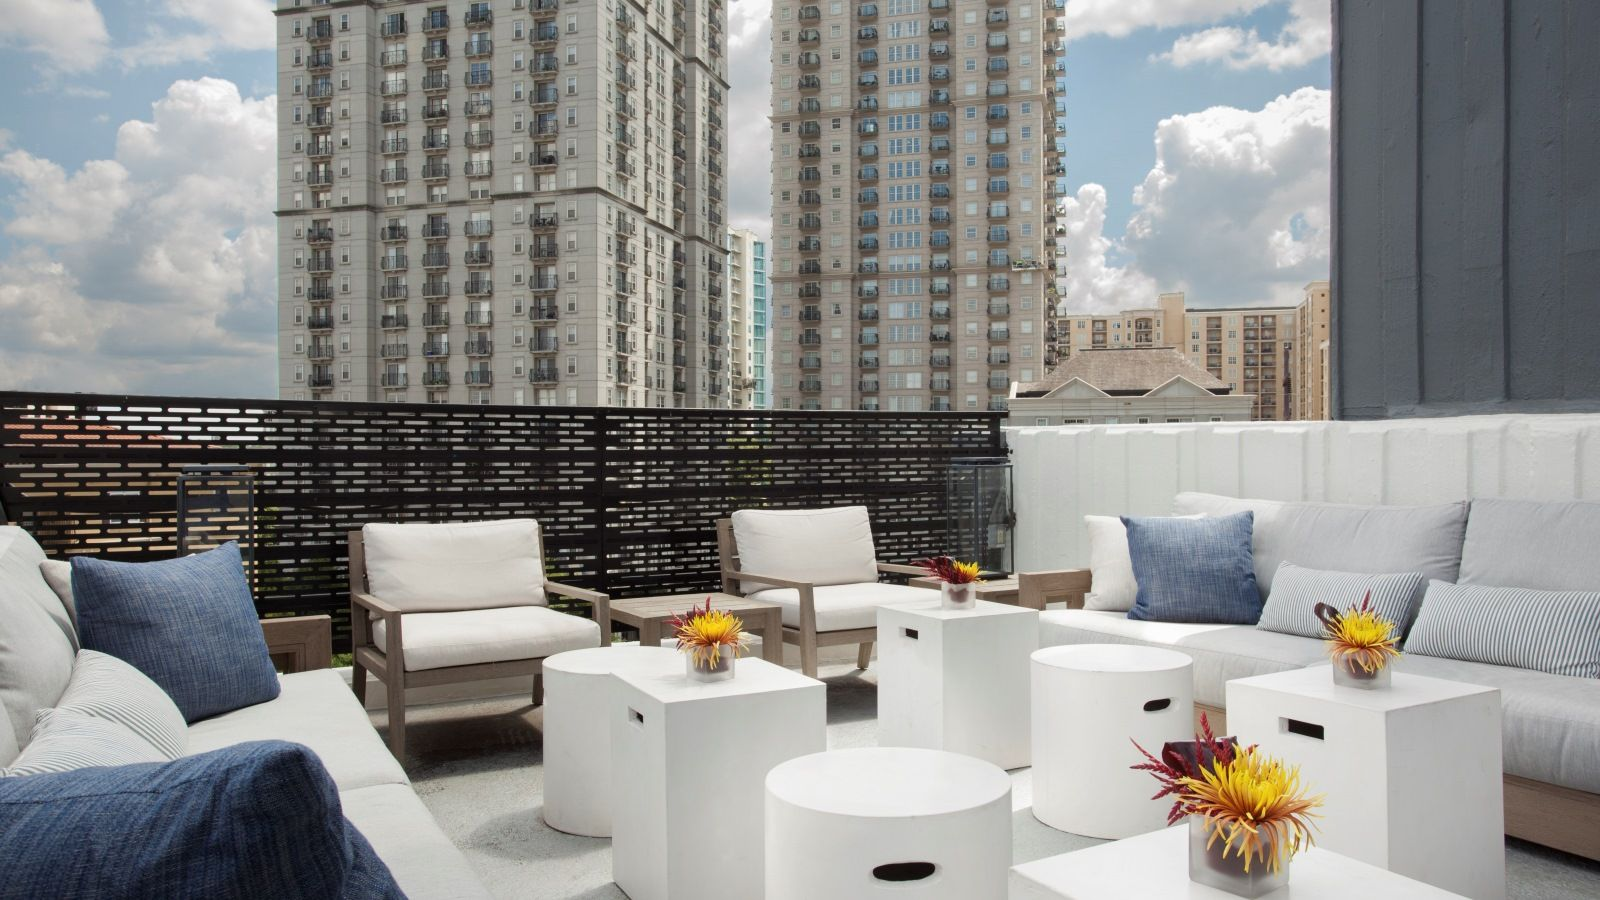 WETDECK - W Atlanta Midtown